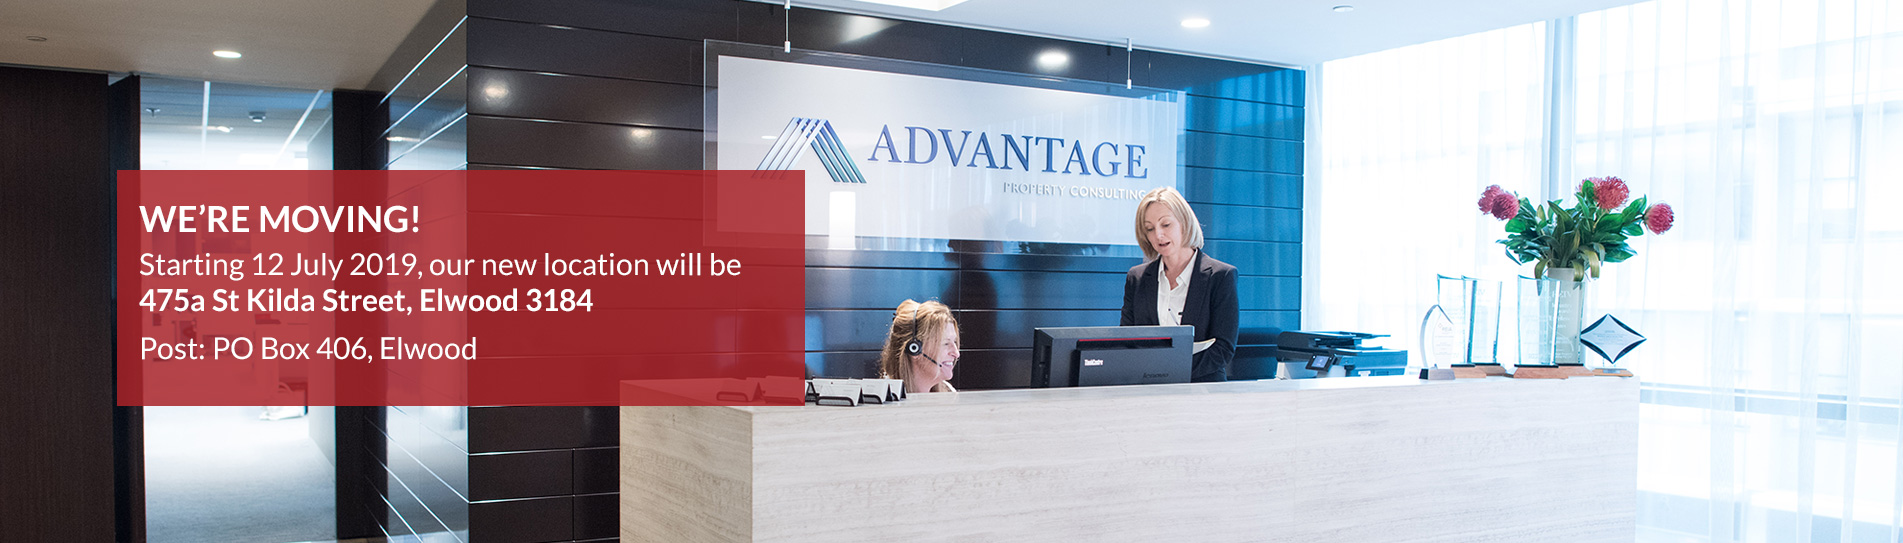 Melbourne's Most Experienced Buyer's Agents | Advantage Property